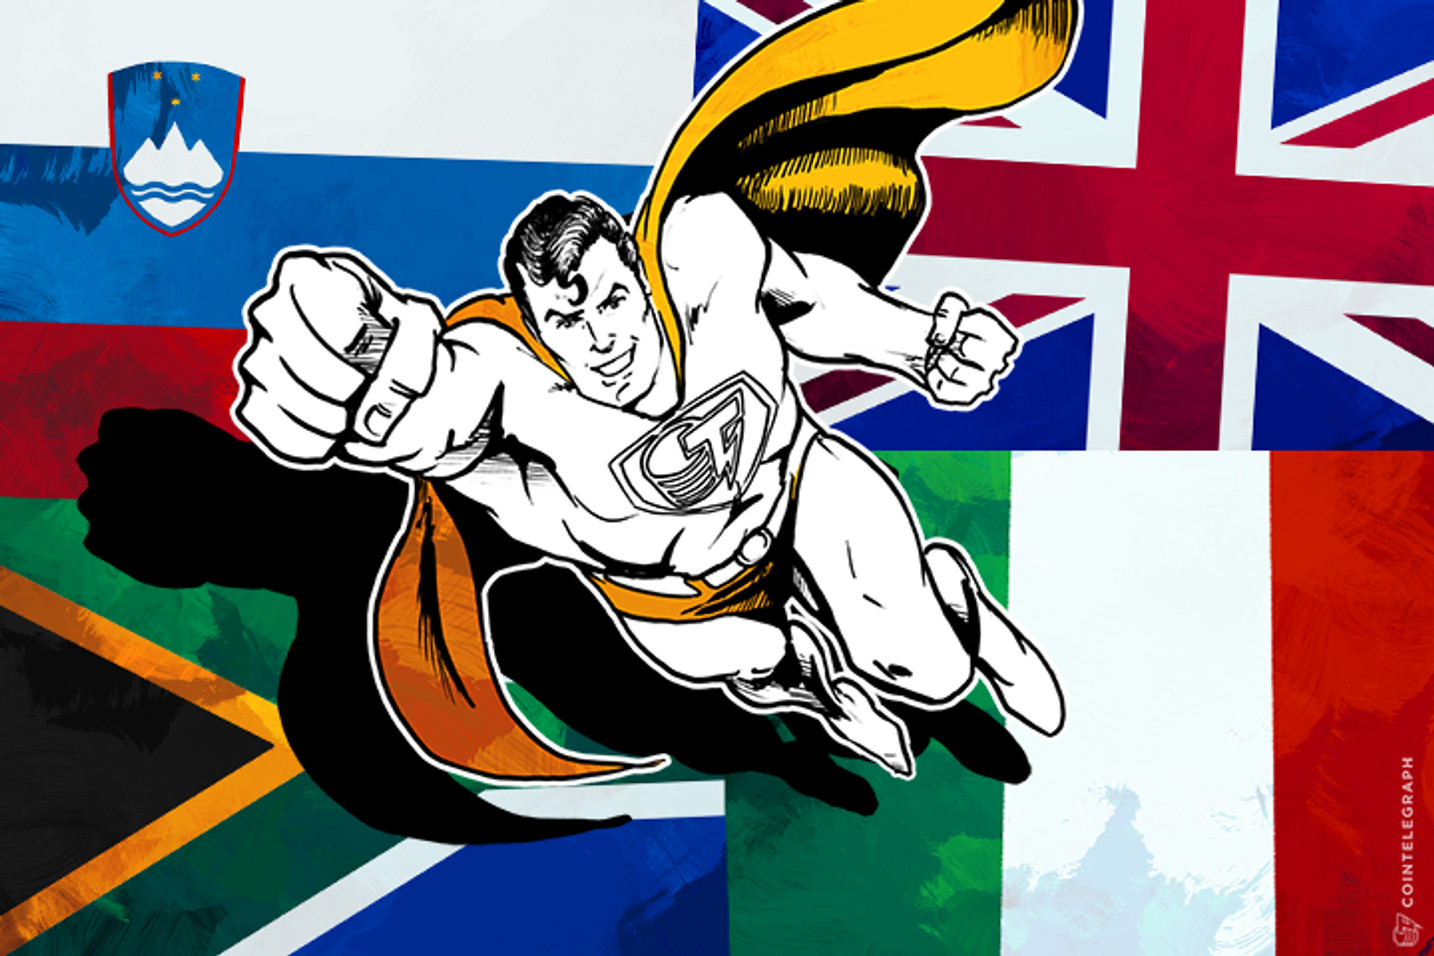 Cointelegraph Media Group Launches Regional Publications in South Africa, Italy, UK and Slovenia